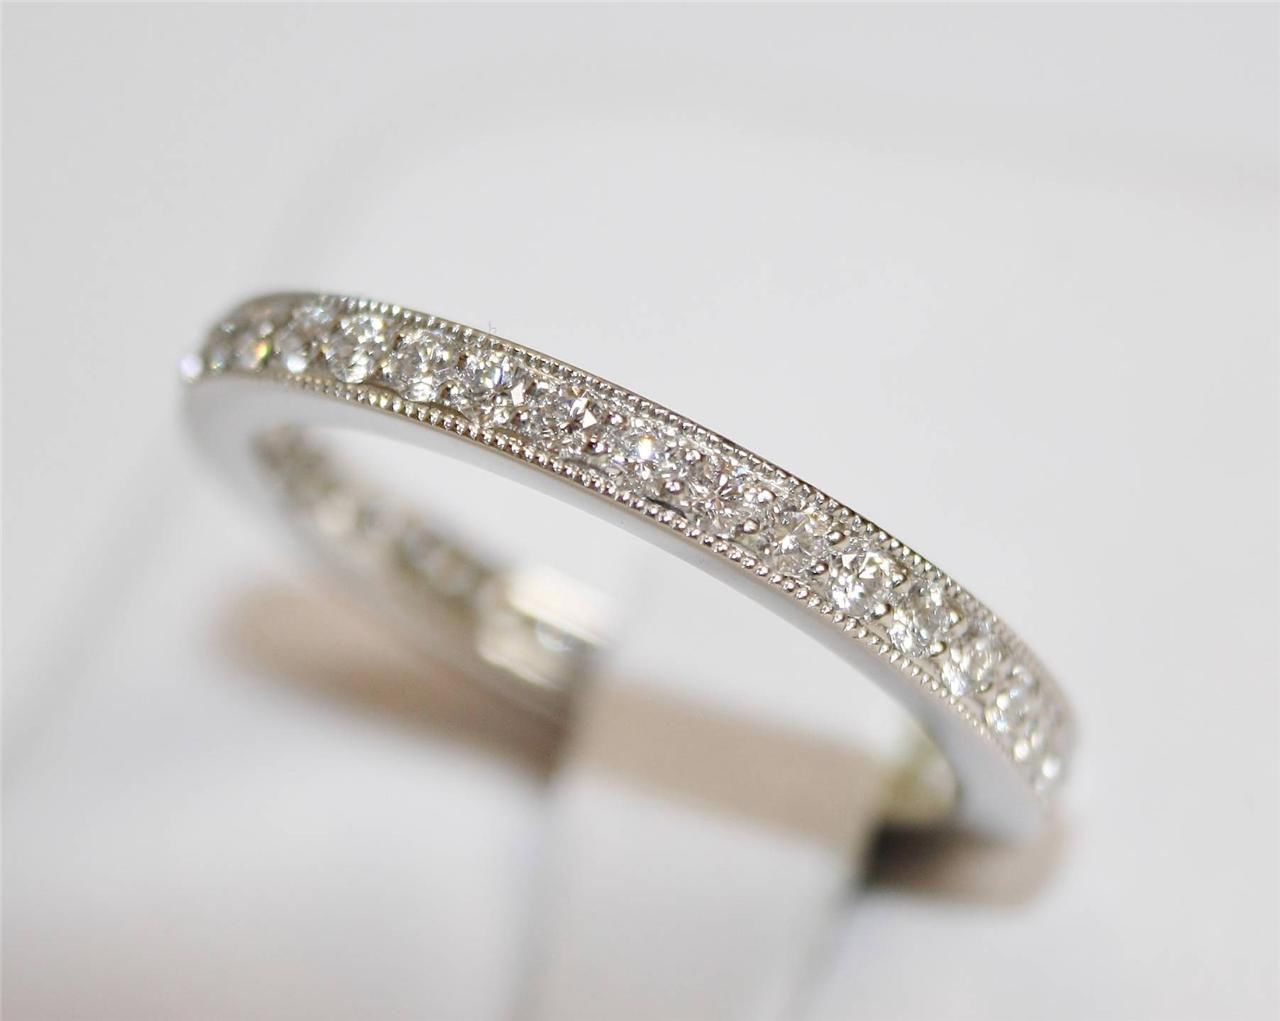 Tiffany Eternity Ring - Denver, CO